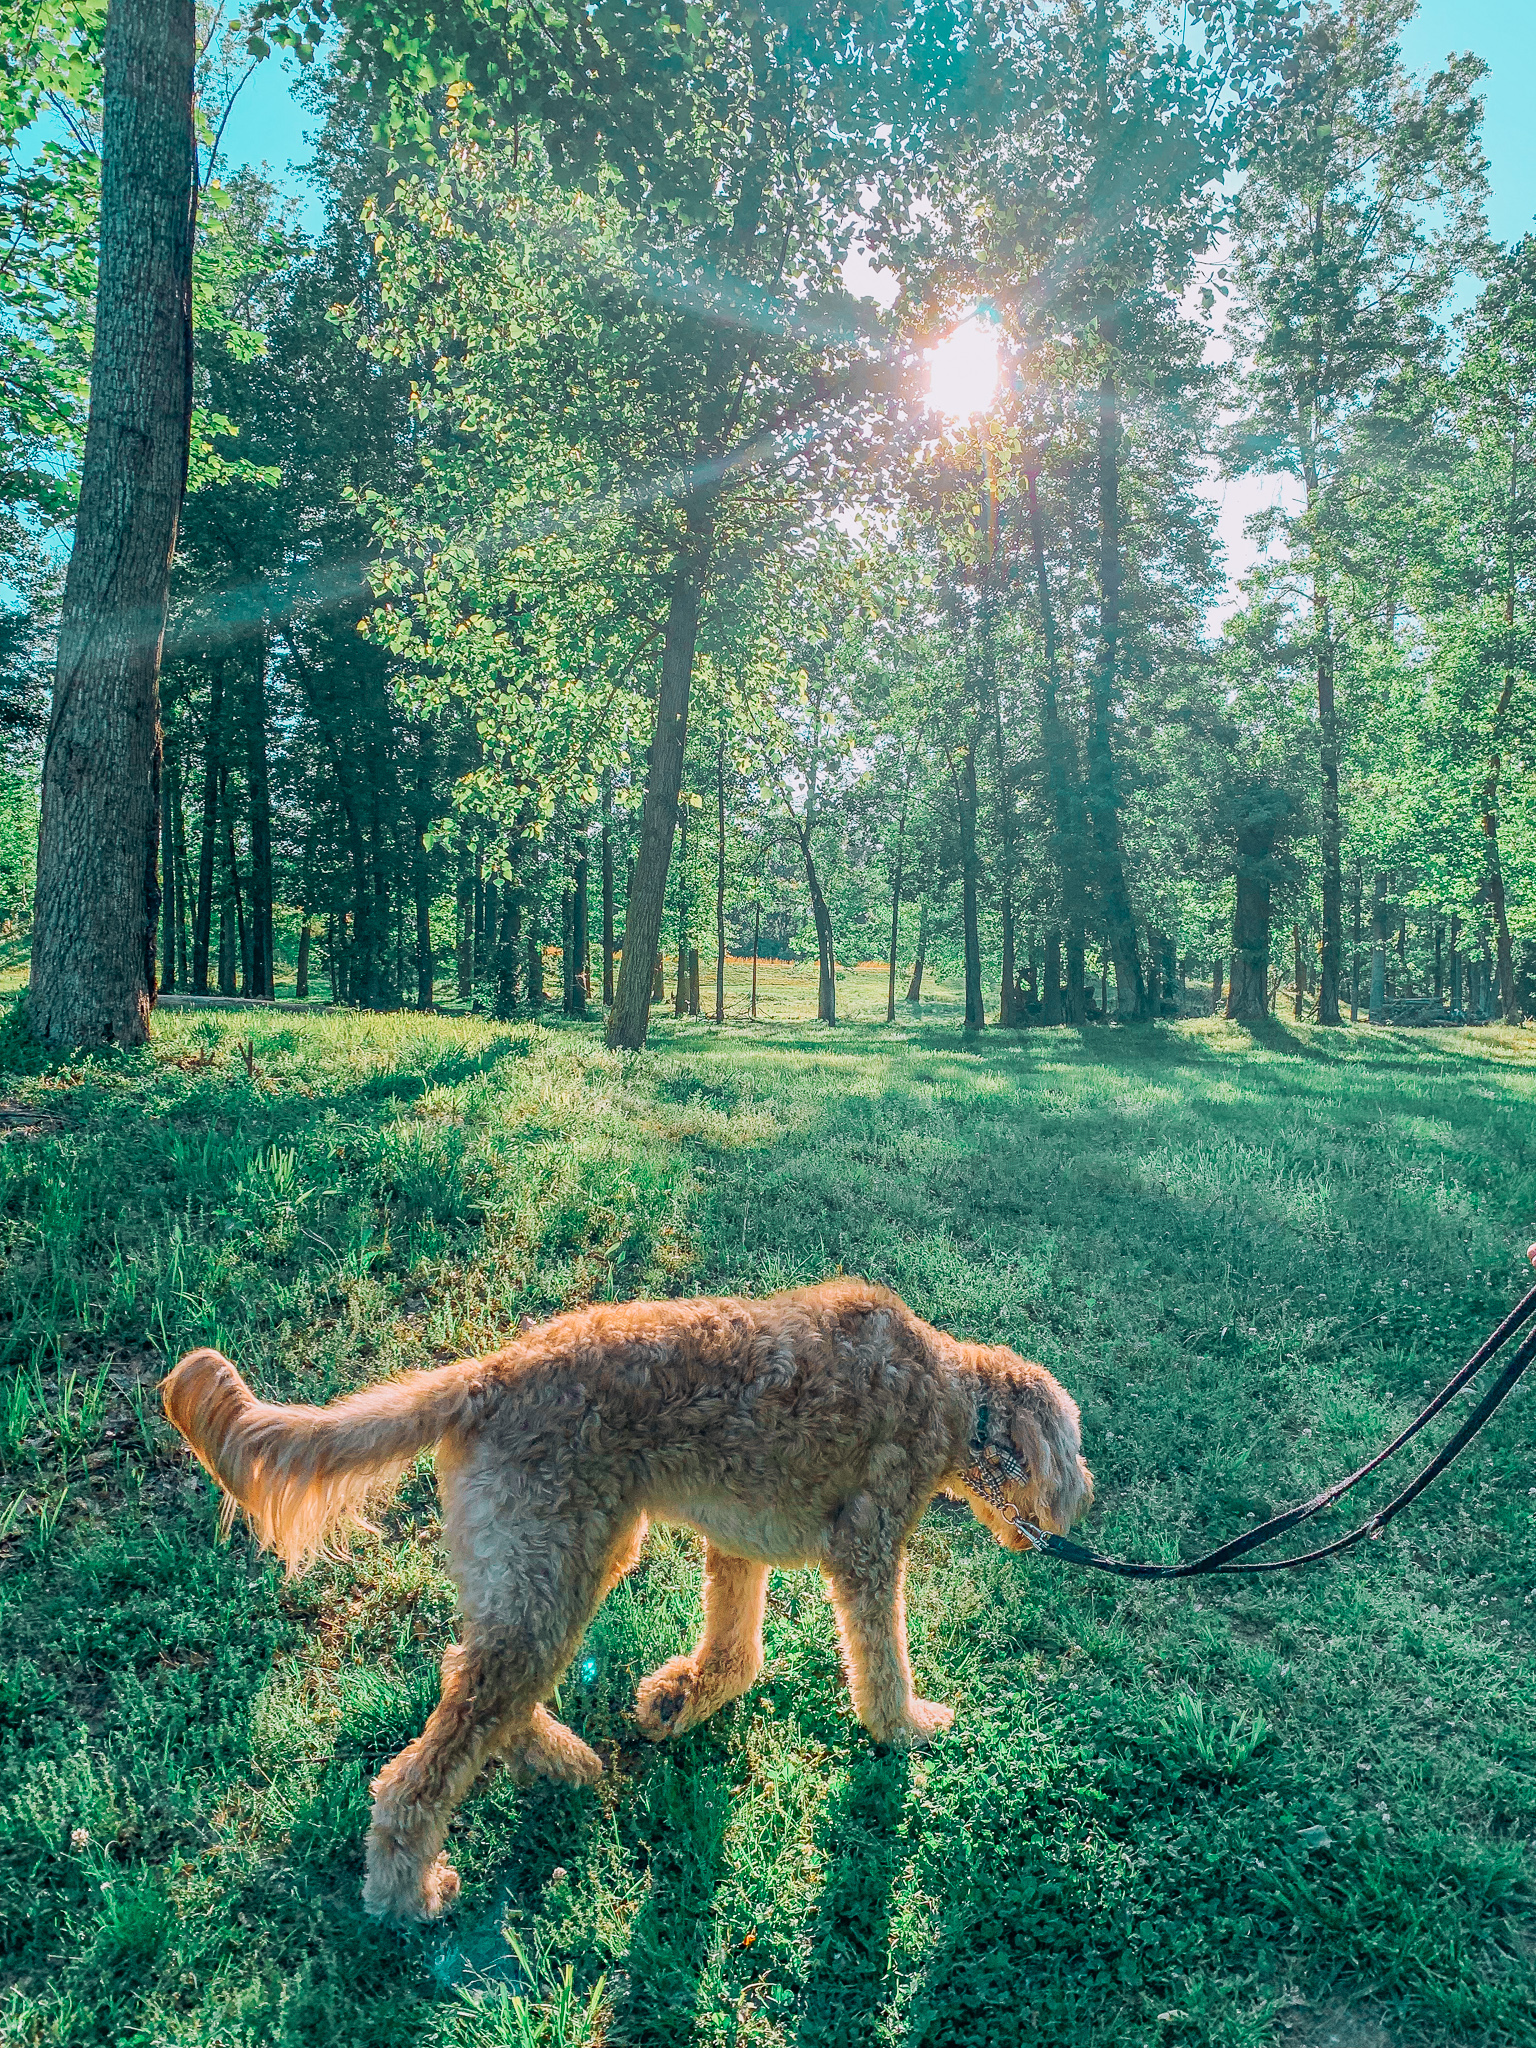 fitness trails Charlotte North Carolina rock hill South Carolina the river walk fitness walking golden doodle Leo doodle dog pet friendly